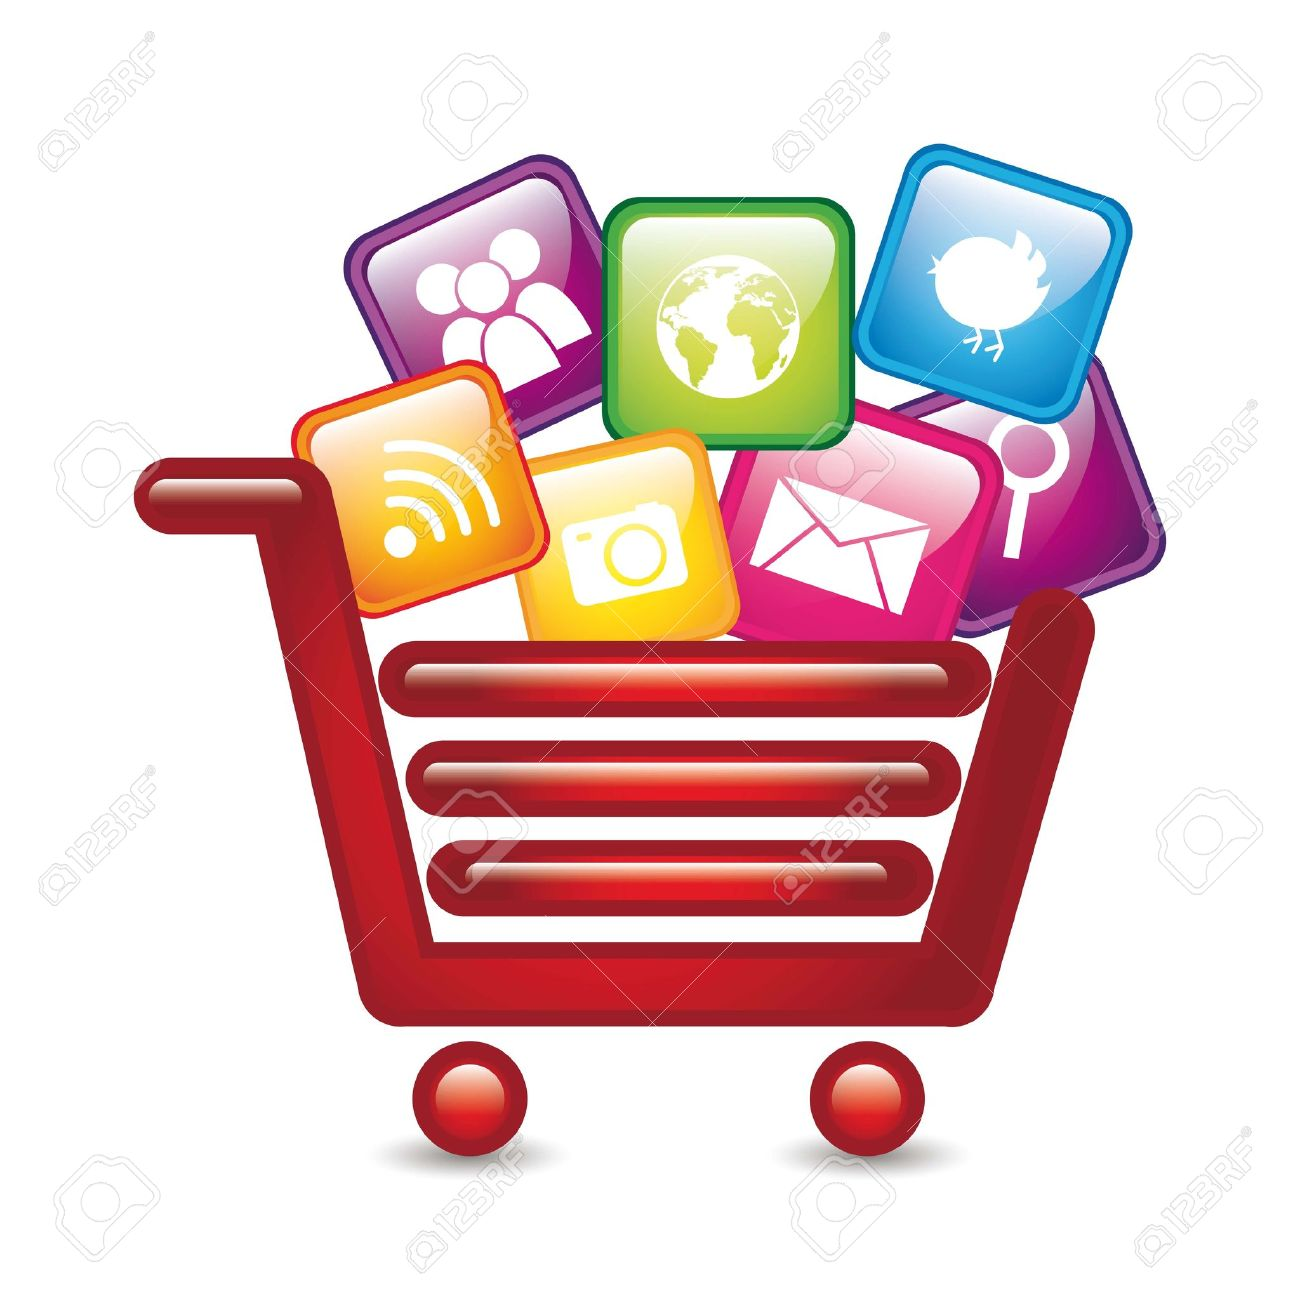 Apps Over Shopping Cart, App Store. Vector Illustration Royalty.